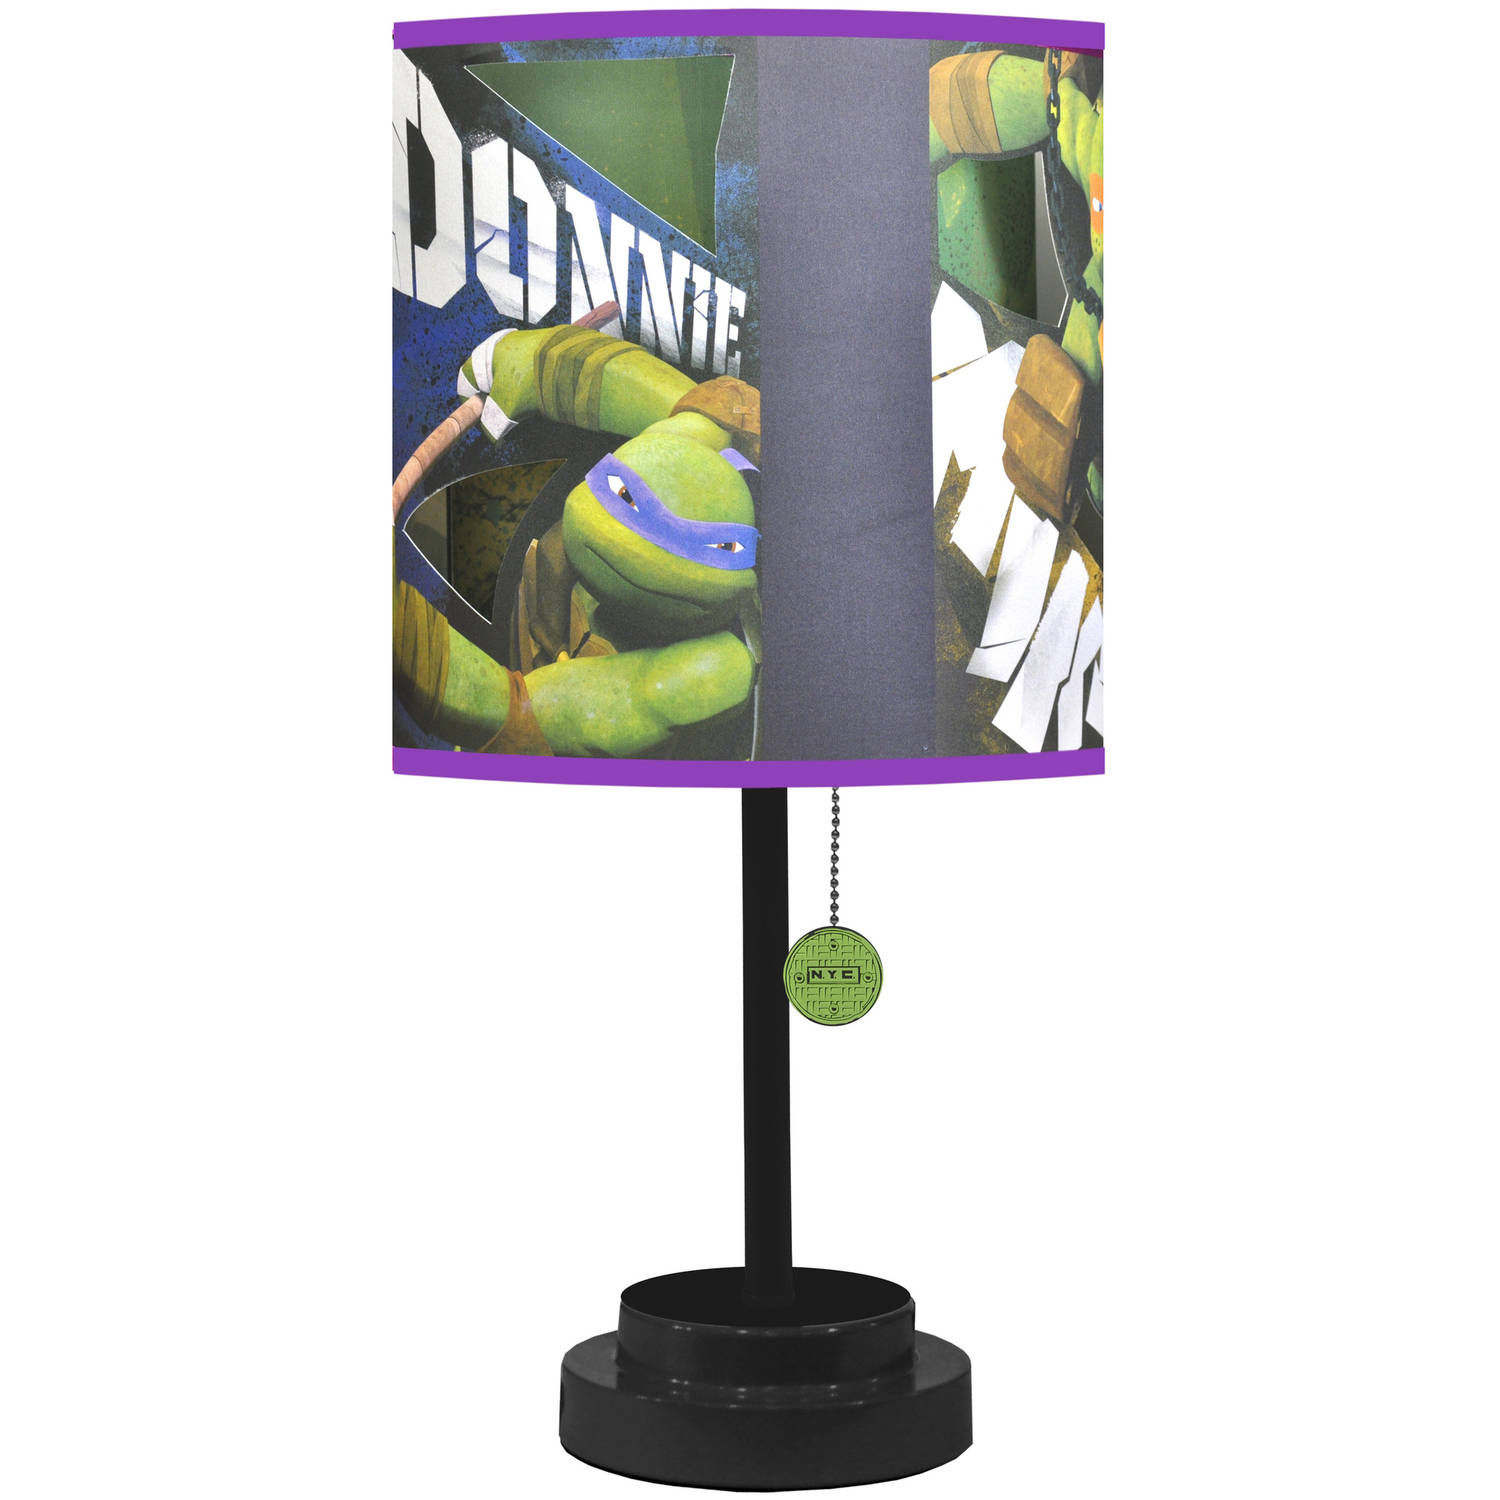 "Nickelodeon Ninja Turtles Table Lamp with Bonus Die-Cut Features and Bulb- 18""H"